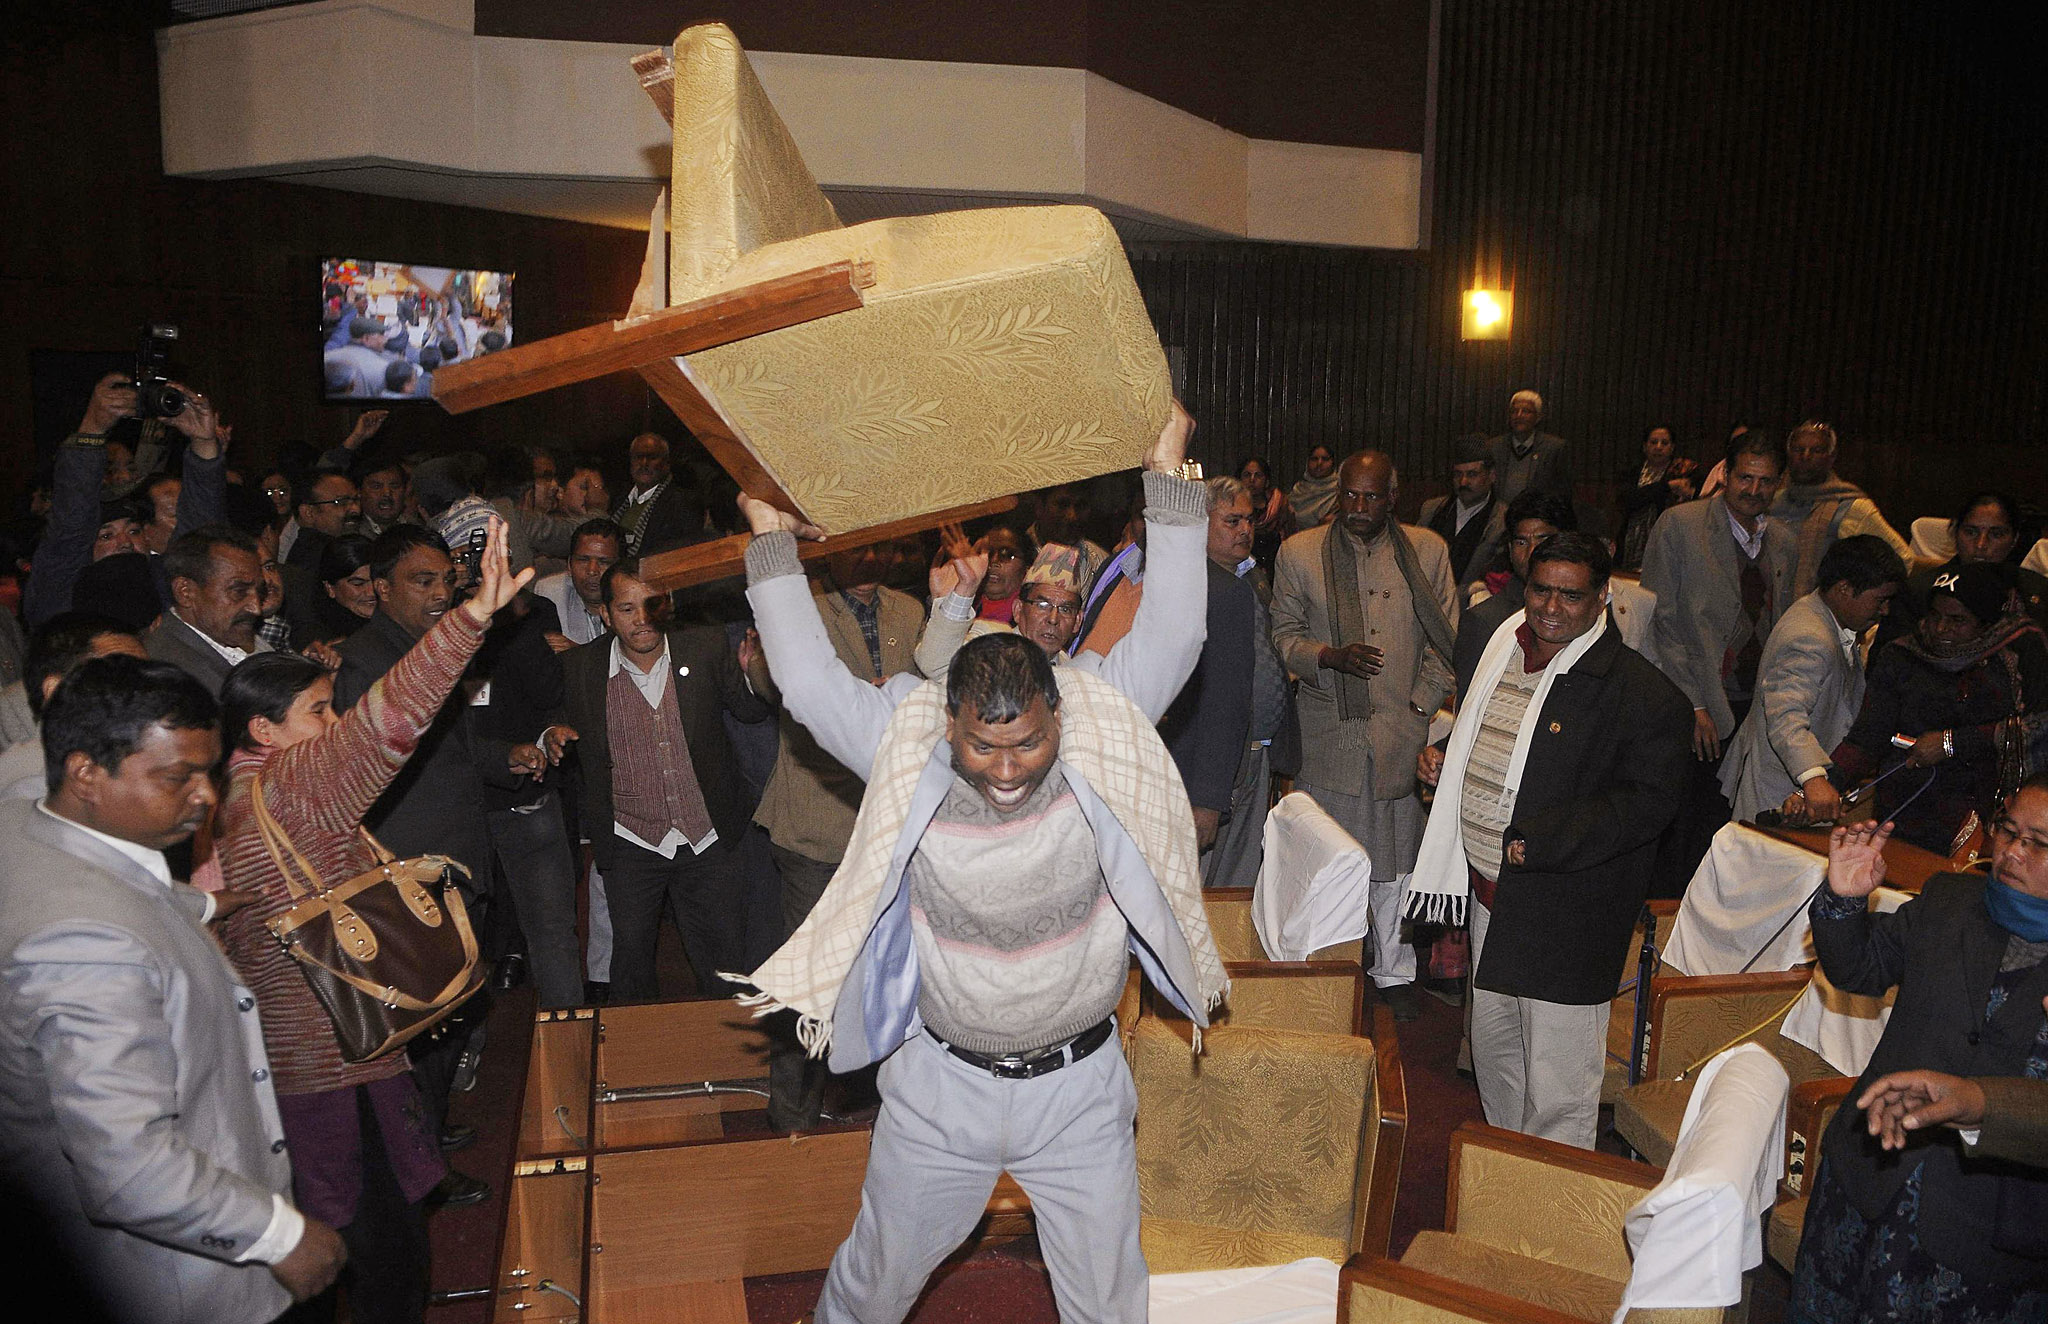 A constitution assembly member of an opposition party throws a chair during a meeting inside the Constitution Assembly building in Kathmandu...A constitution assembly member of an opposition party throws a chair during a meeting inside the Constitution Assembly building in Kathmandu January 20, 2015. The new assembly was elected to write a constitution after the abolition of the 240-year-old feudal monarchy that the Maoists fought against. REUTERS/Bikash Dware (NEPAL - Tags: POLITICS CIVIL UNREST TPX IMAGES OF THE DAY)